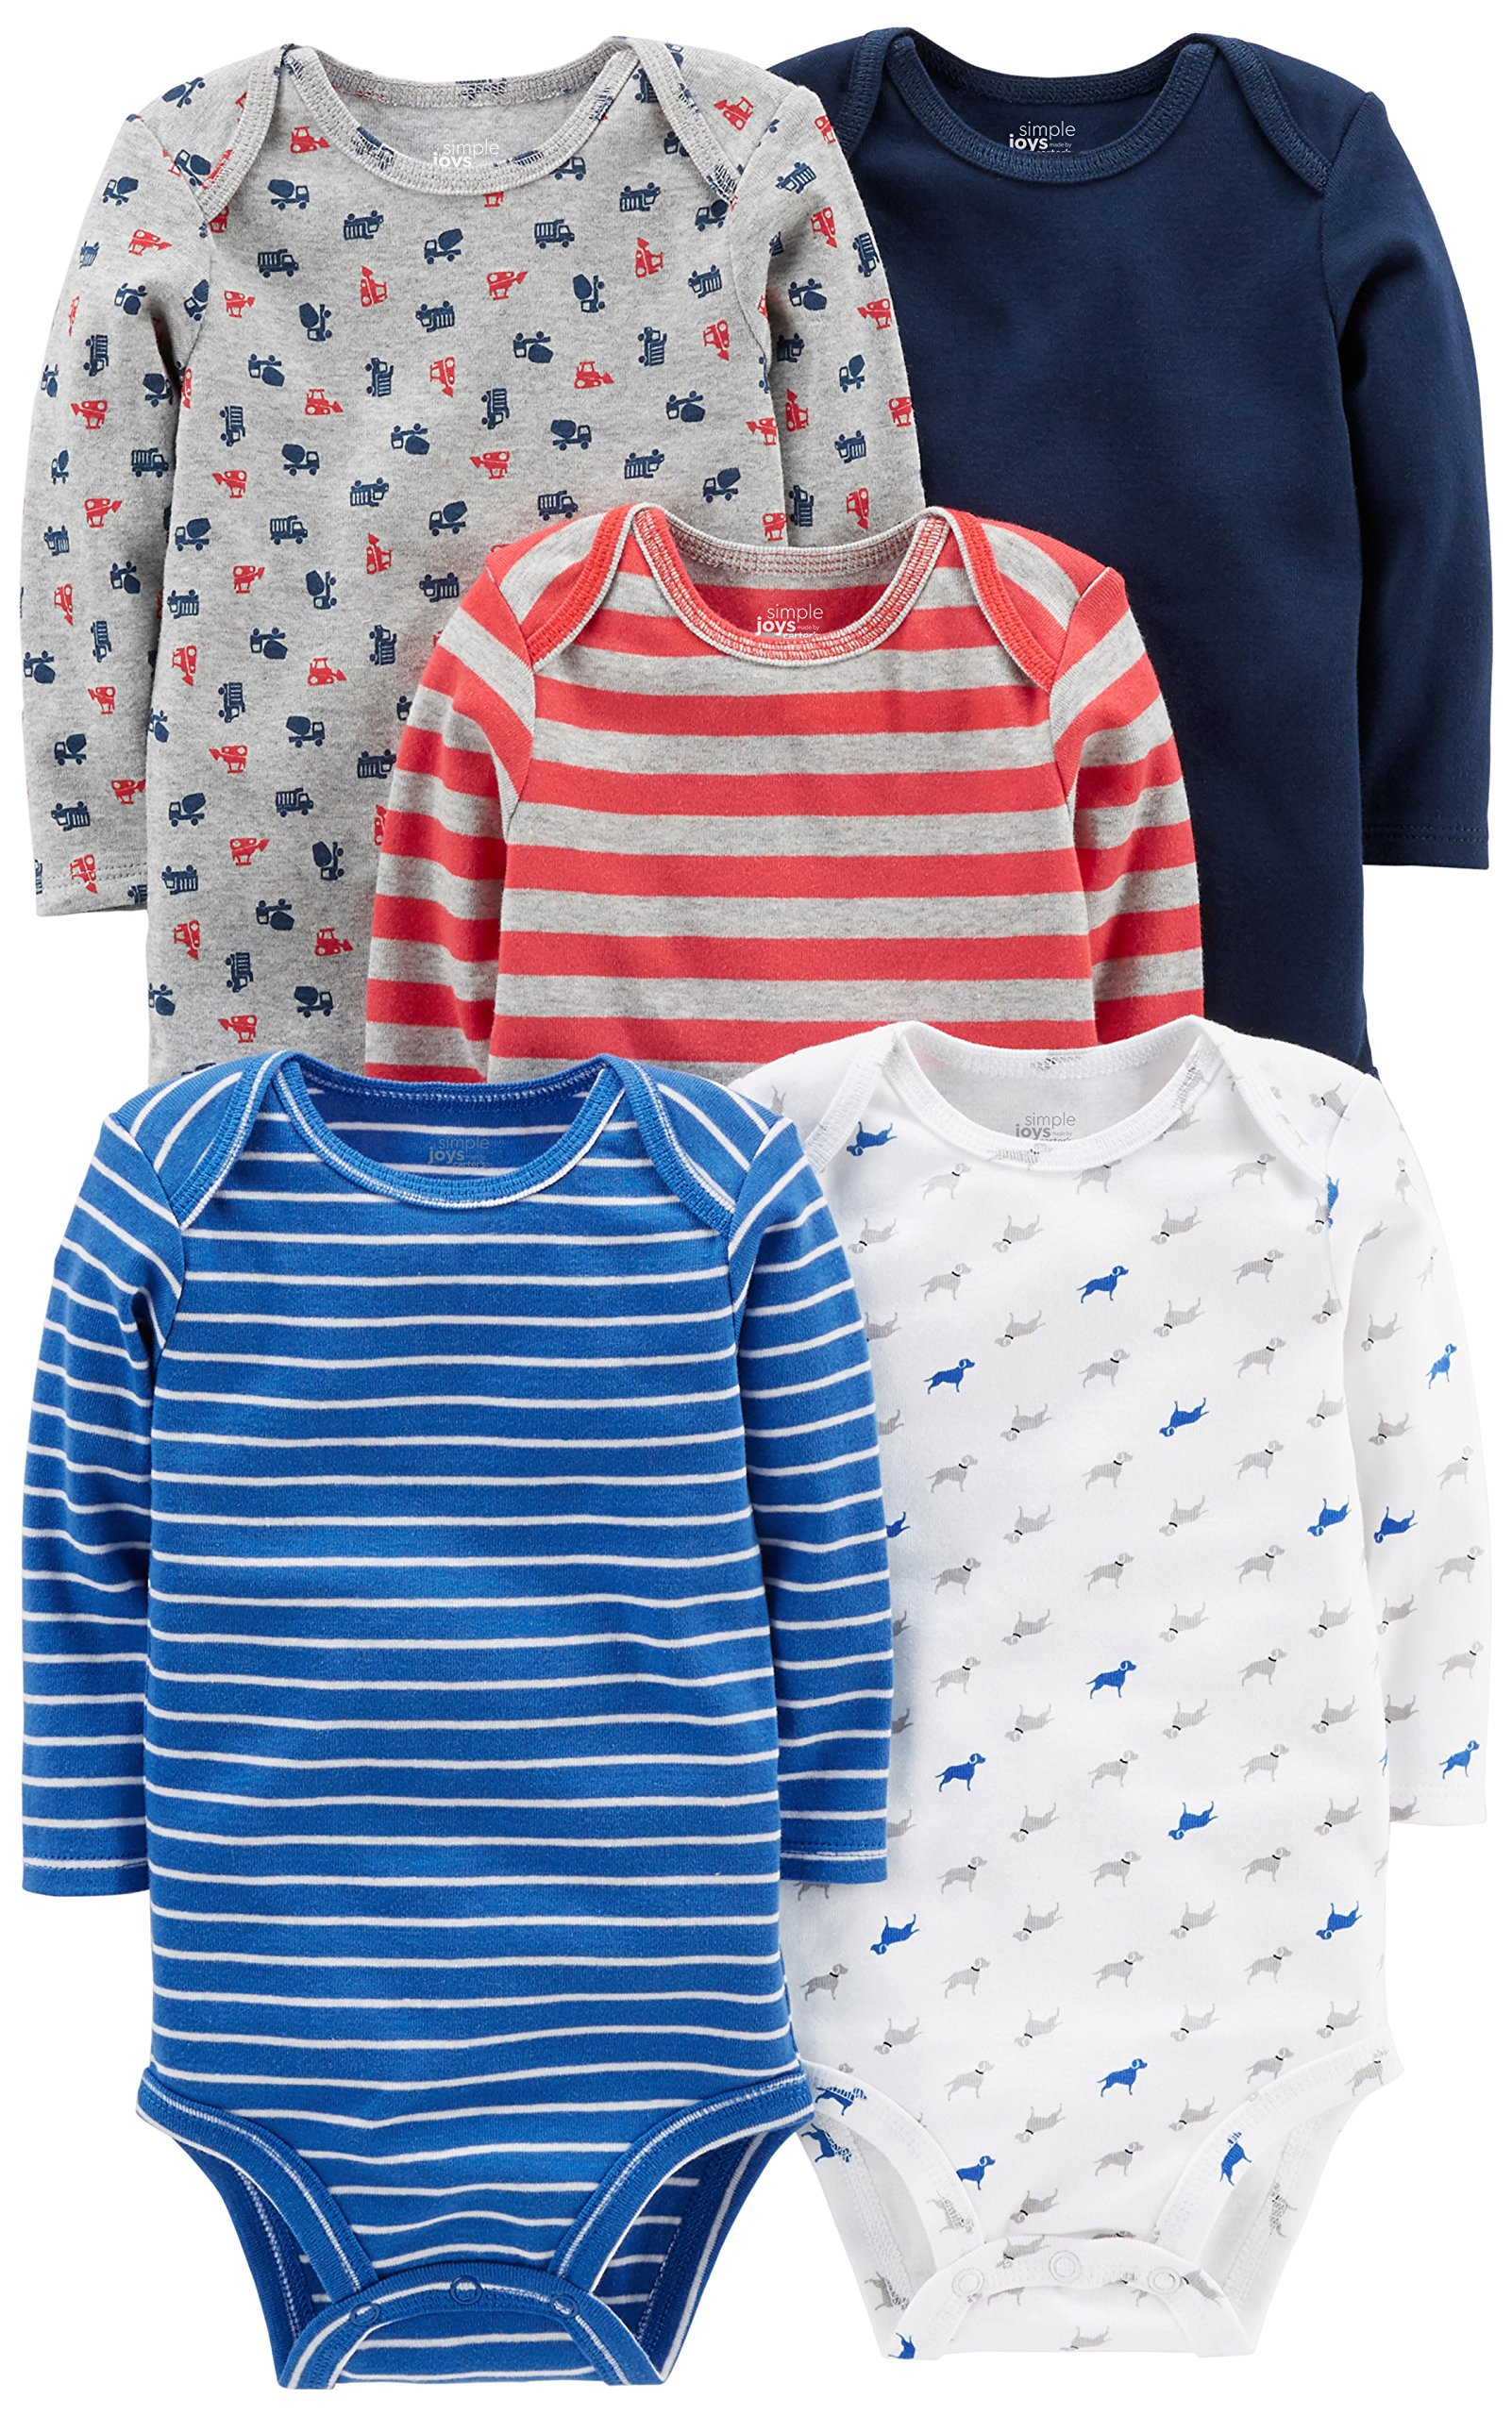 Simple Joys by Carter's Baby Boys' 5-Pack Long-Sleeve Bodysuit, Blue/Red/Grey, 3-6 Months by Simple Joys by Carter's